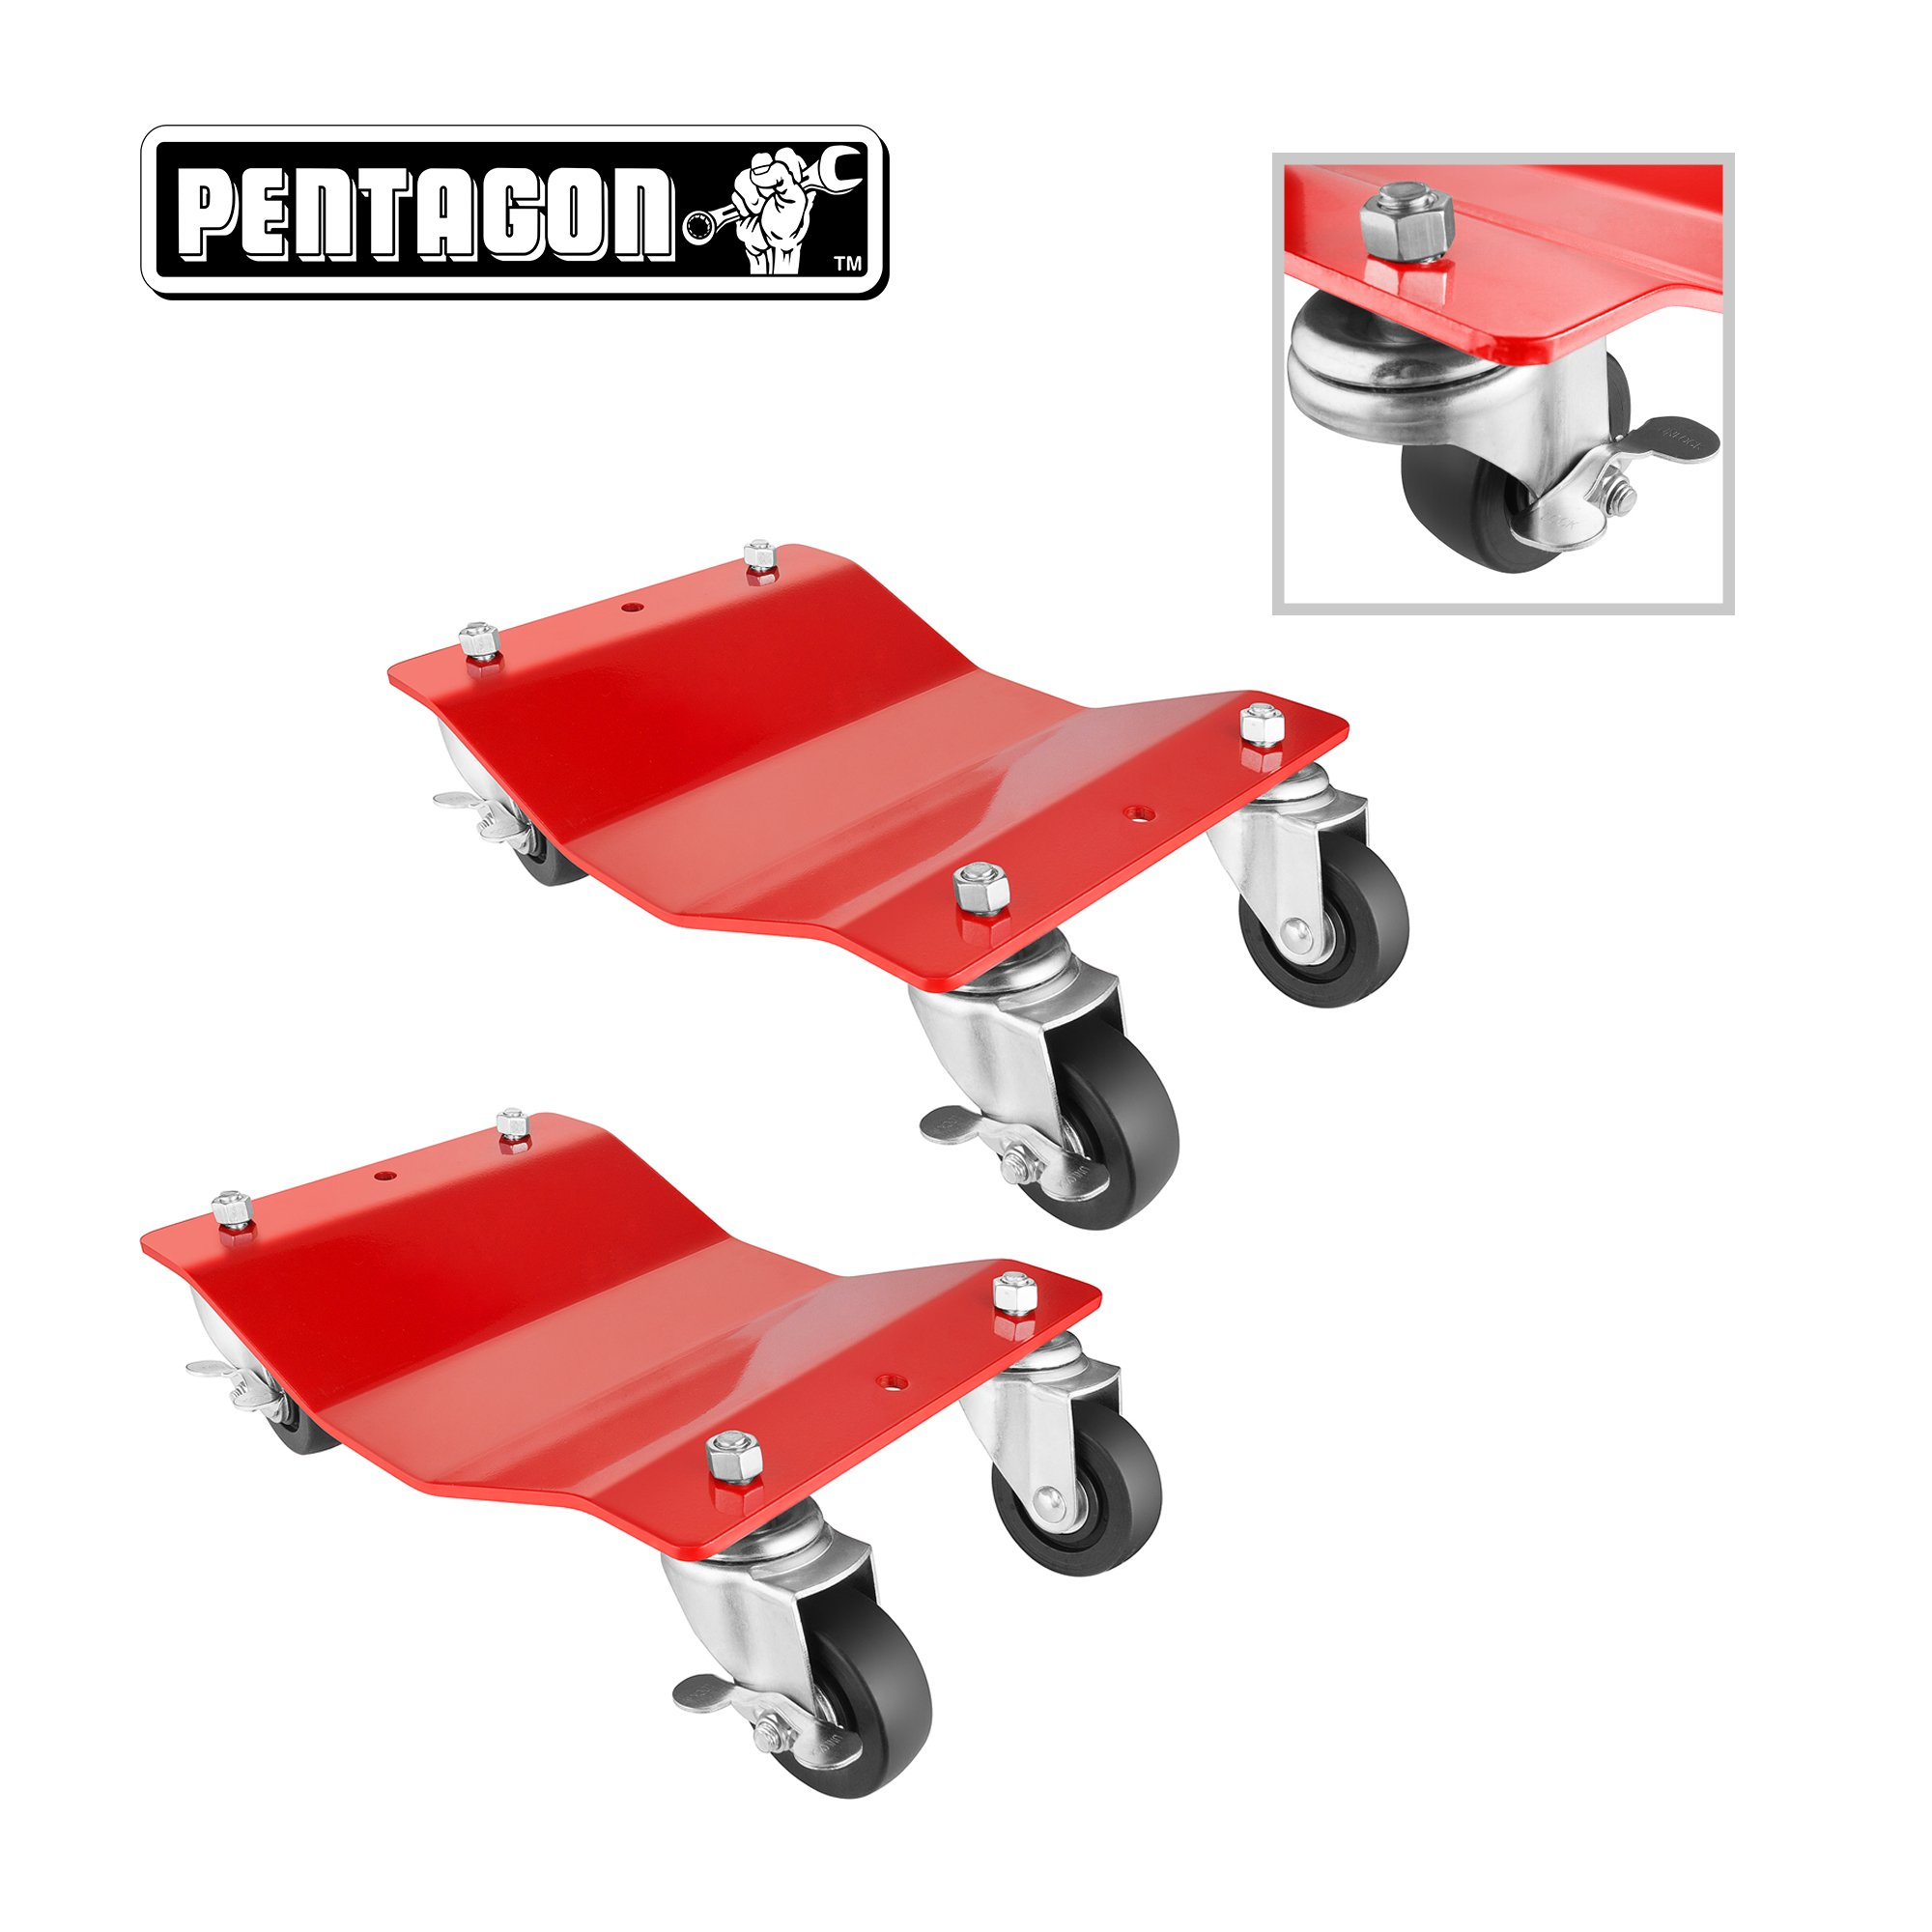 Pentagon Tool | Commercial Grade 2-Pack | Tire Dolly - Tire Skates | 1,500 lbs Rating | Red